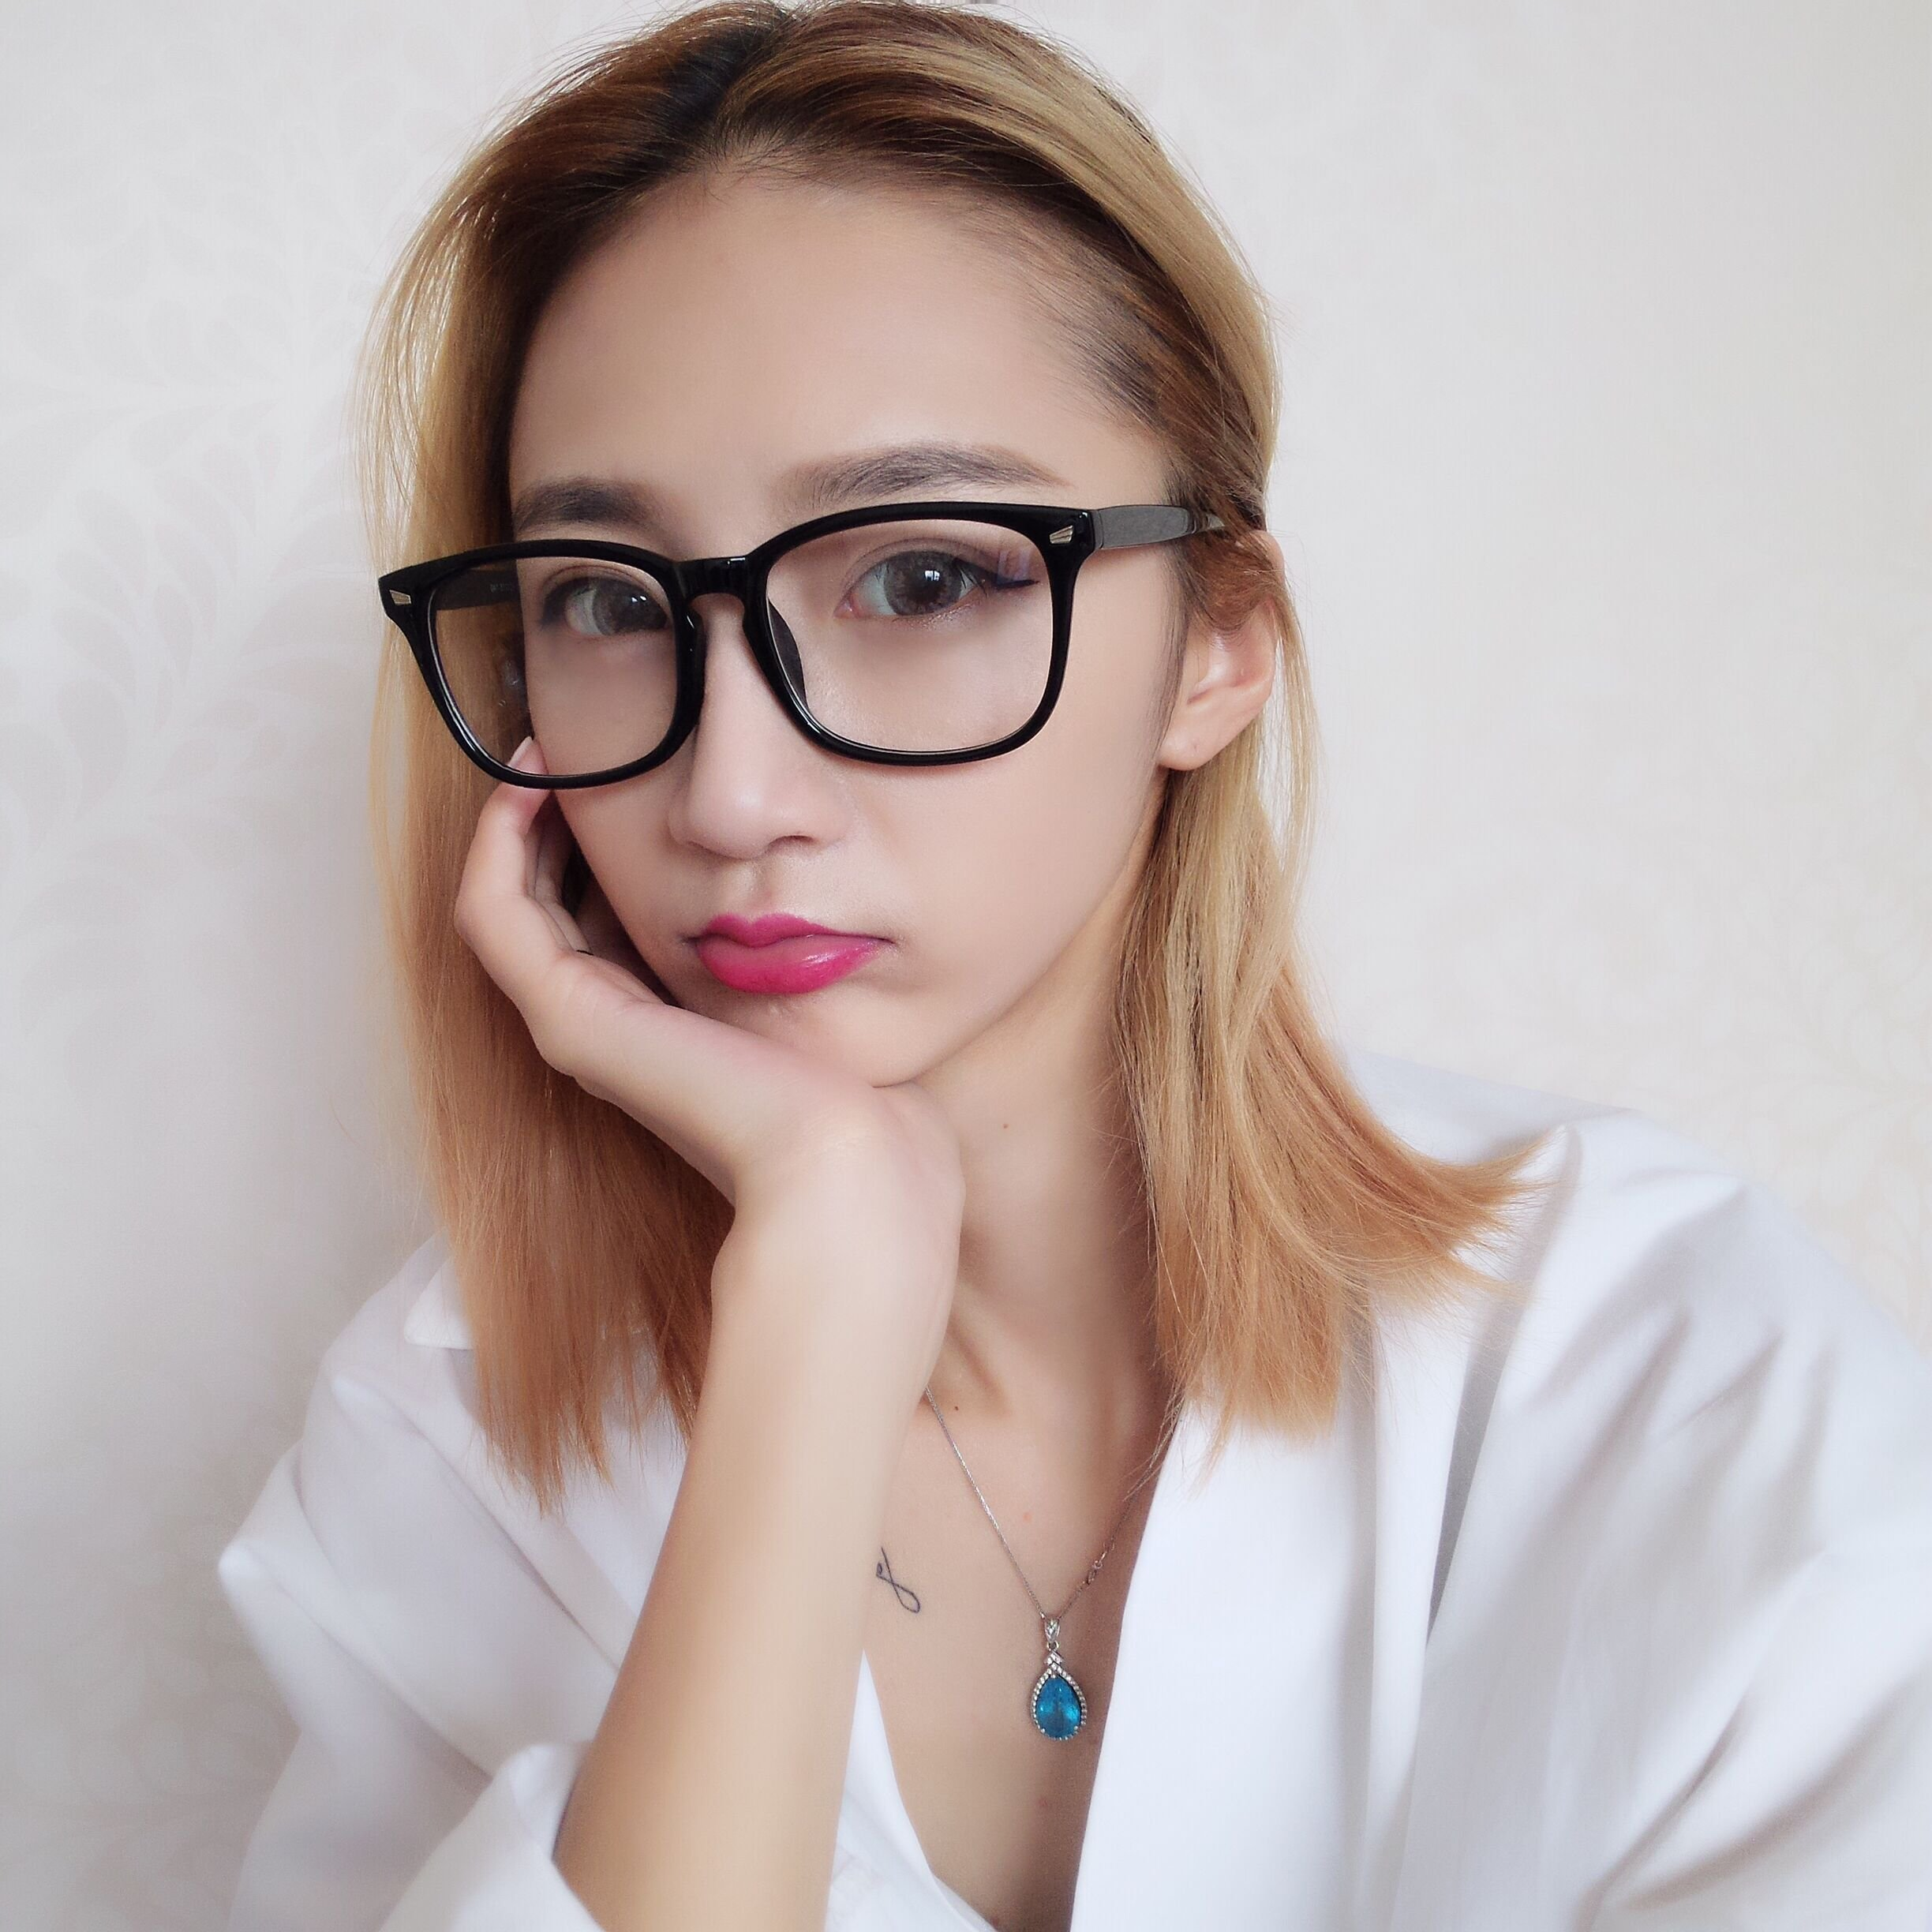 Generic School literary star with plain mirror m nail spectacle frames a face-lift Korea retro large-framed glasses unisex